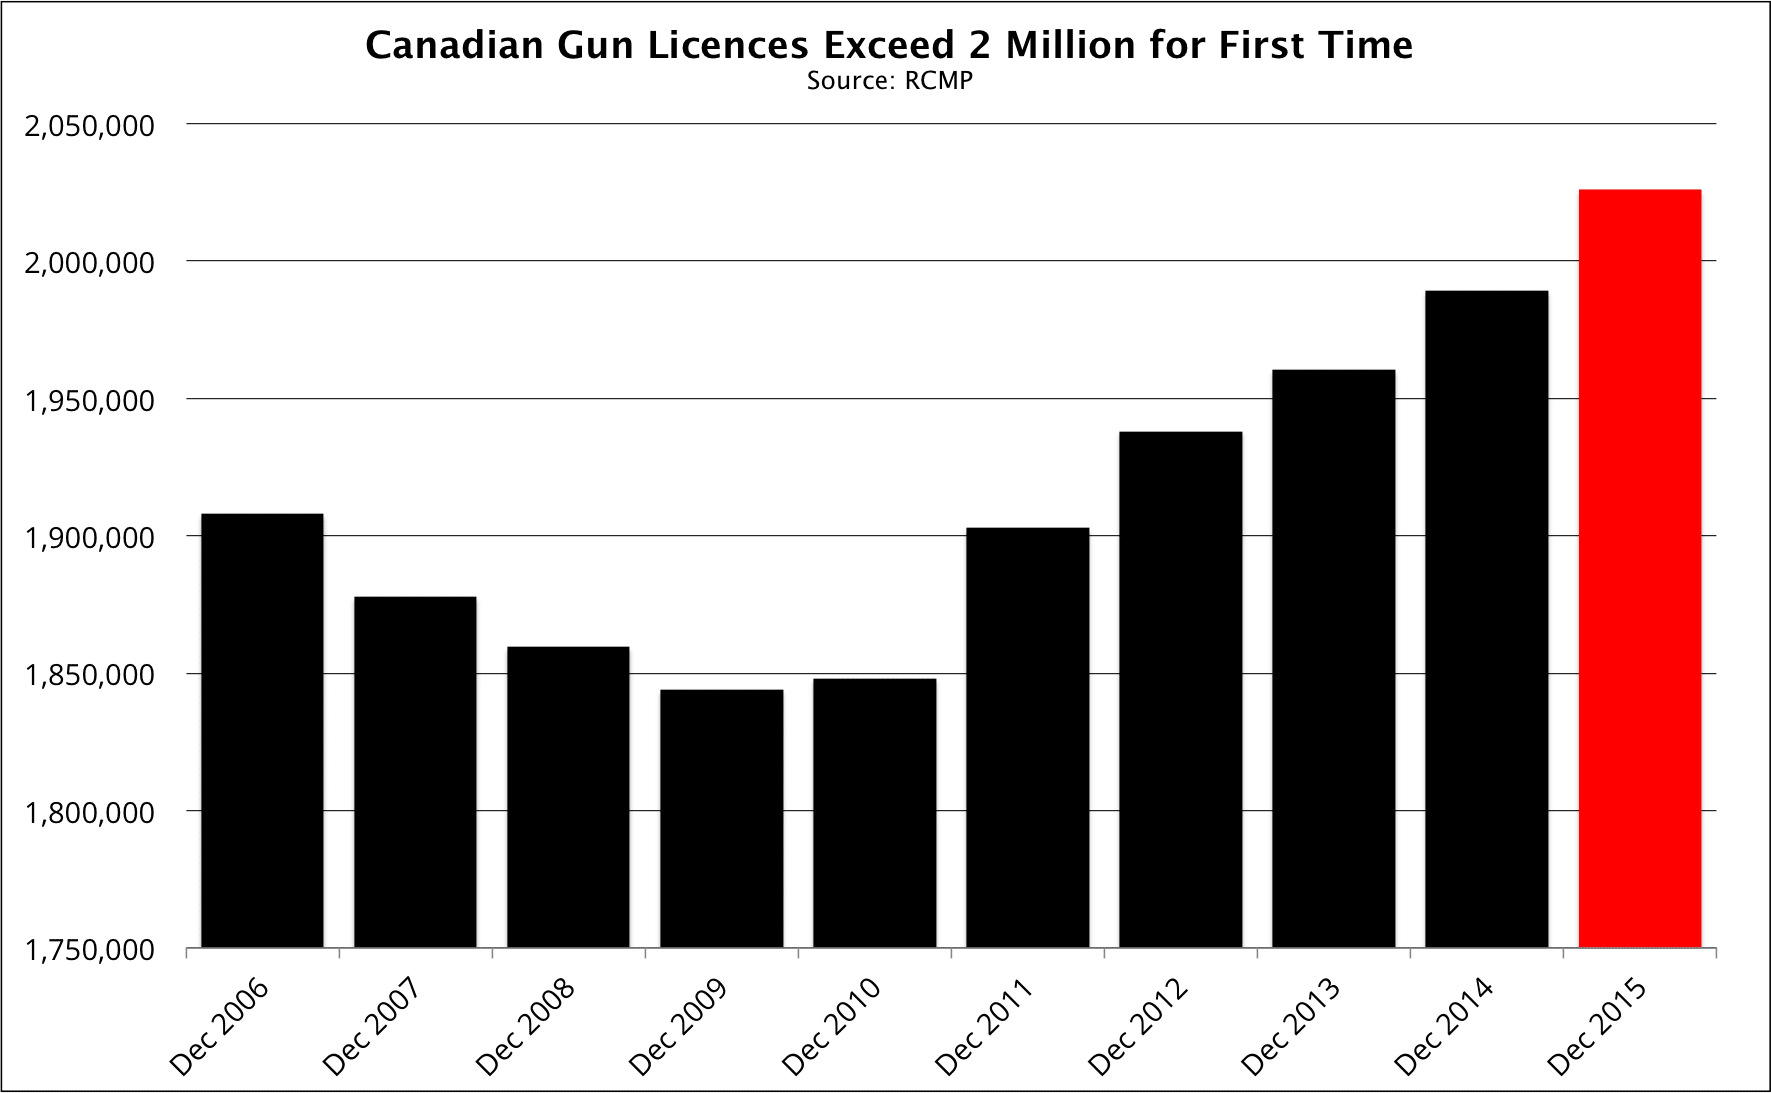 Canadian gun licences exceed 2 million for first time